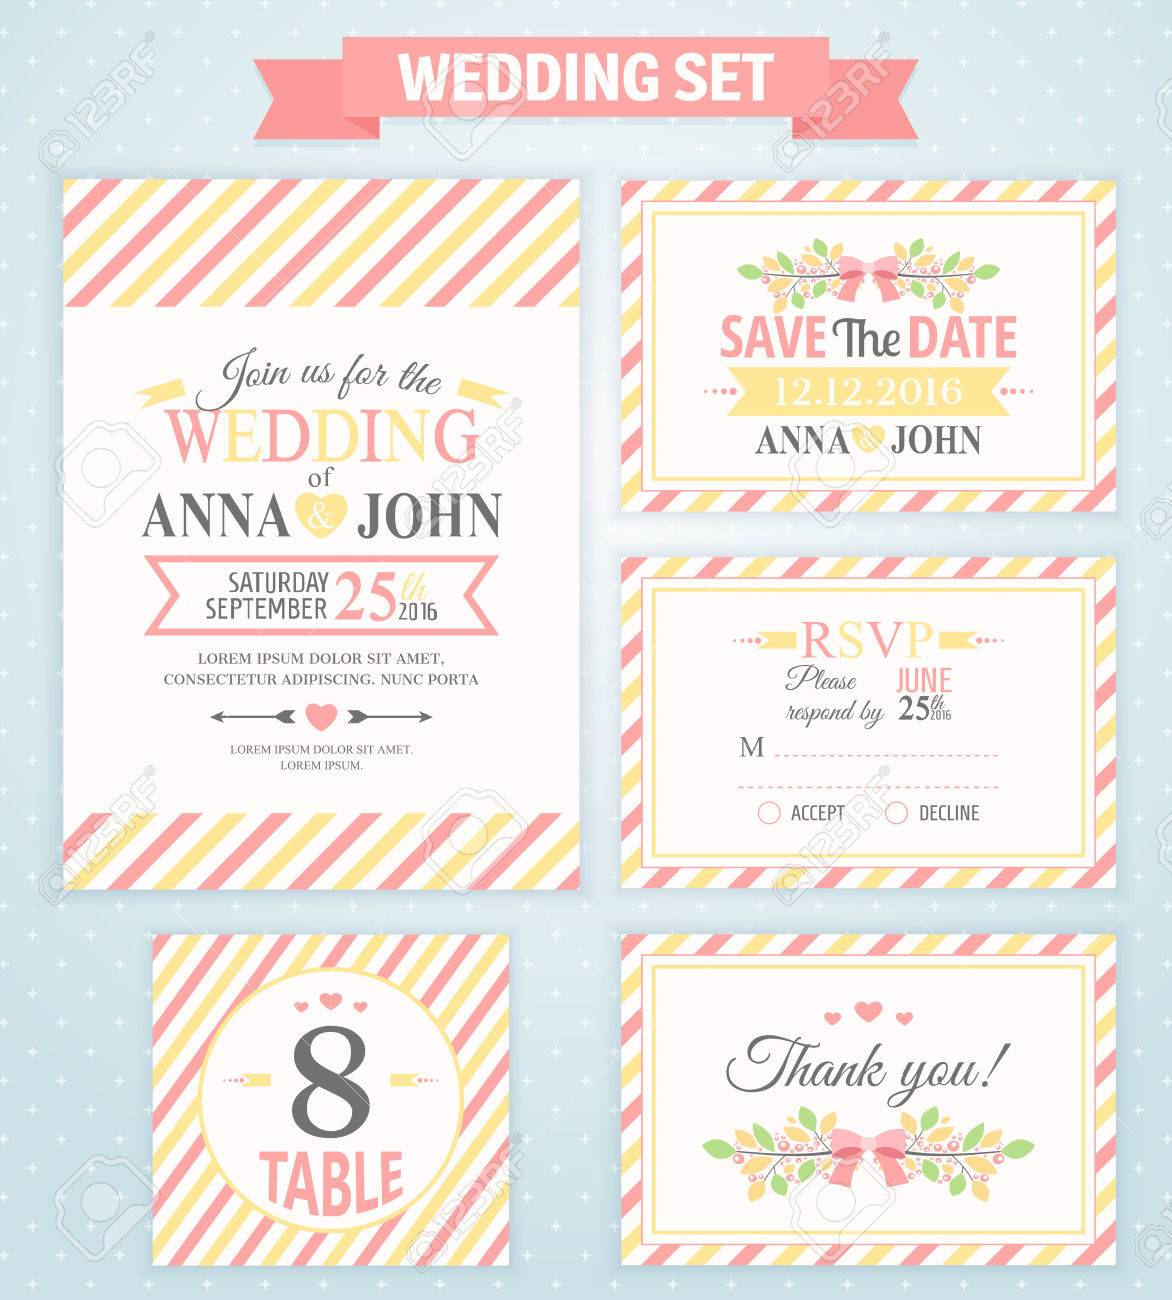 Rsvp Bruiloft Wedding Invitation Template Thank You Card Save The Date Rsvp